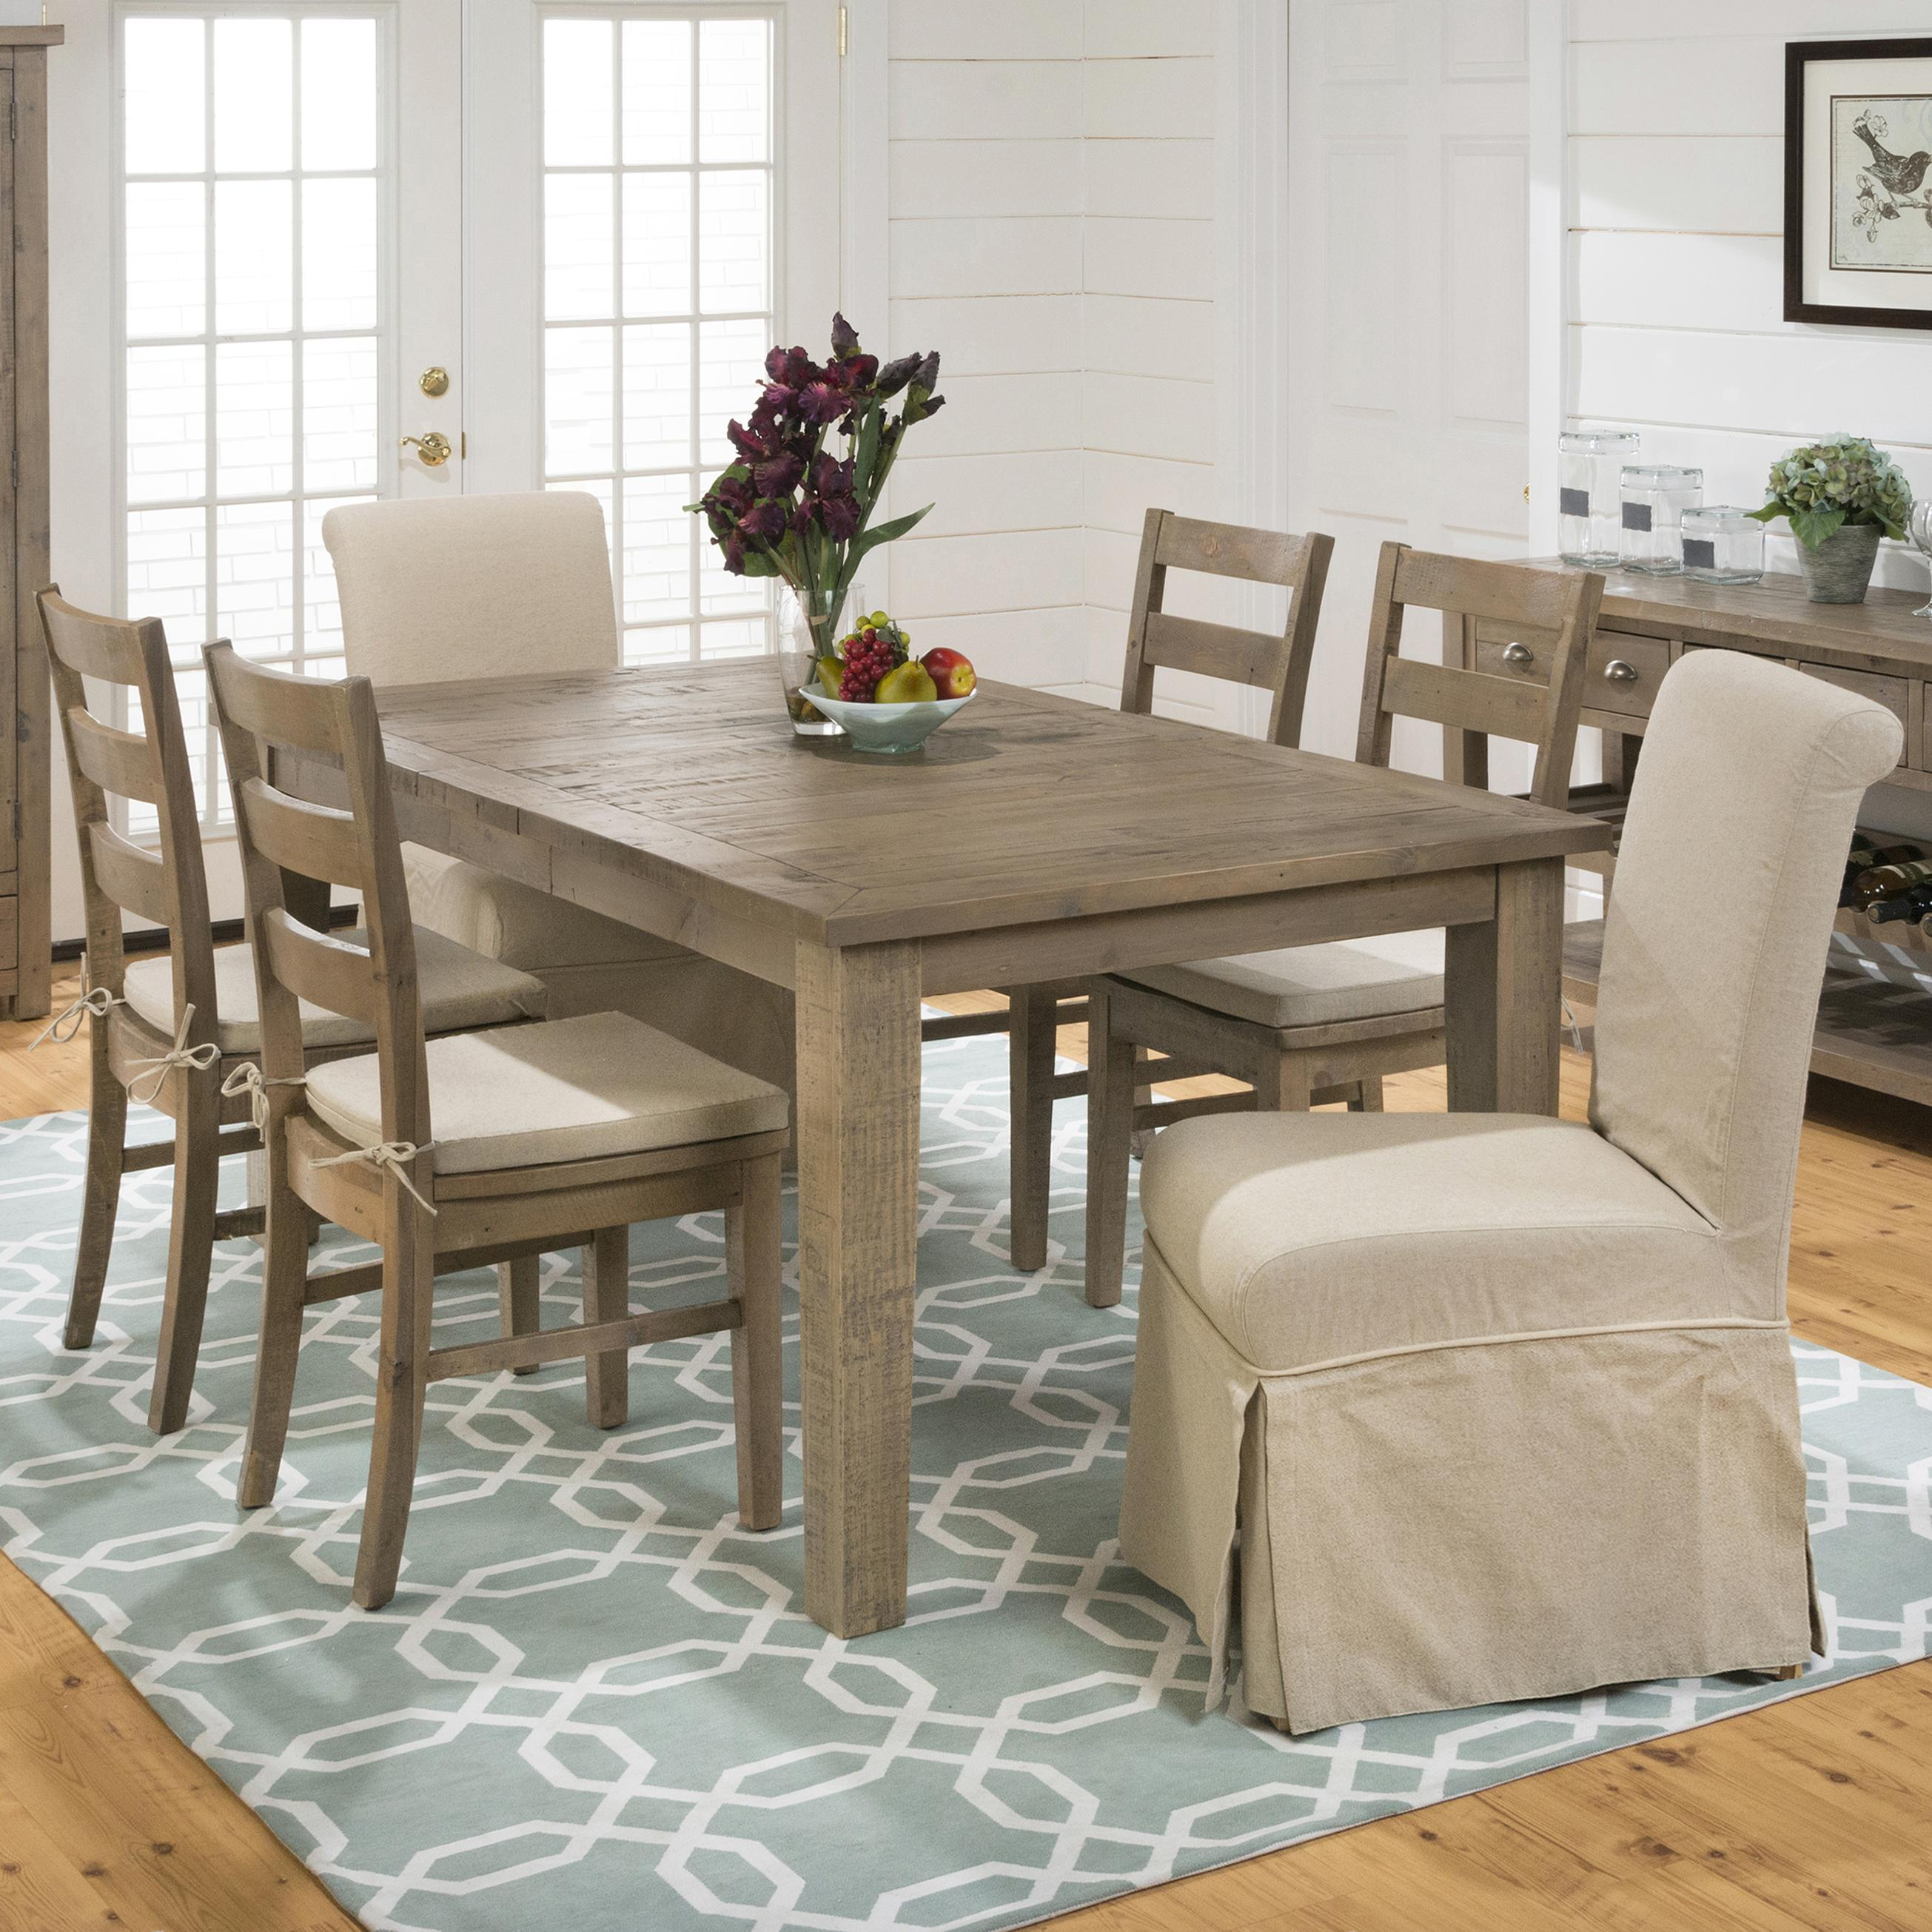 tall dining table chair covers to rent near me rectangular ladderback and slipcover skirted